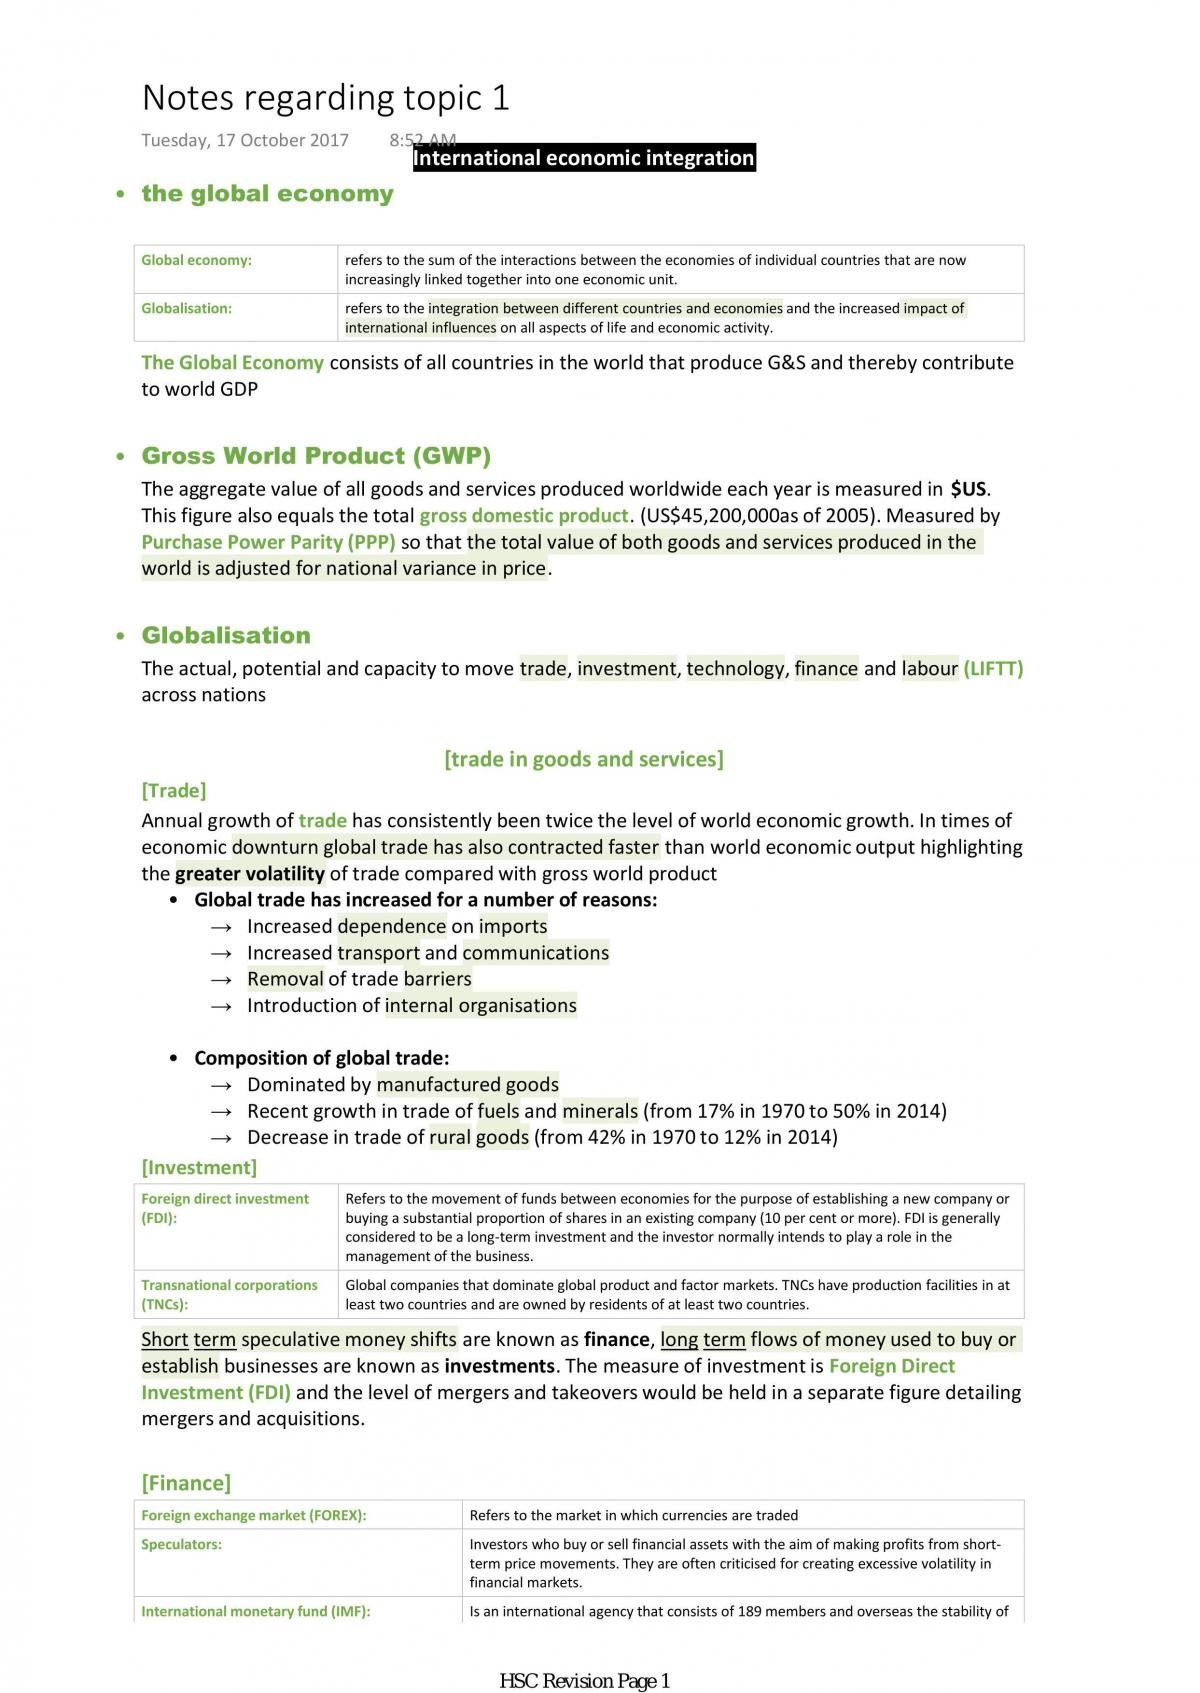 Topic 1: The Global Economy Notes - Page 1